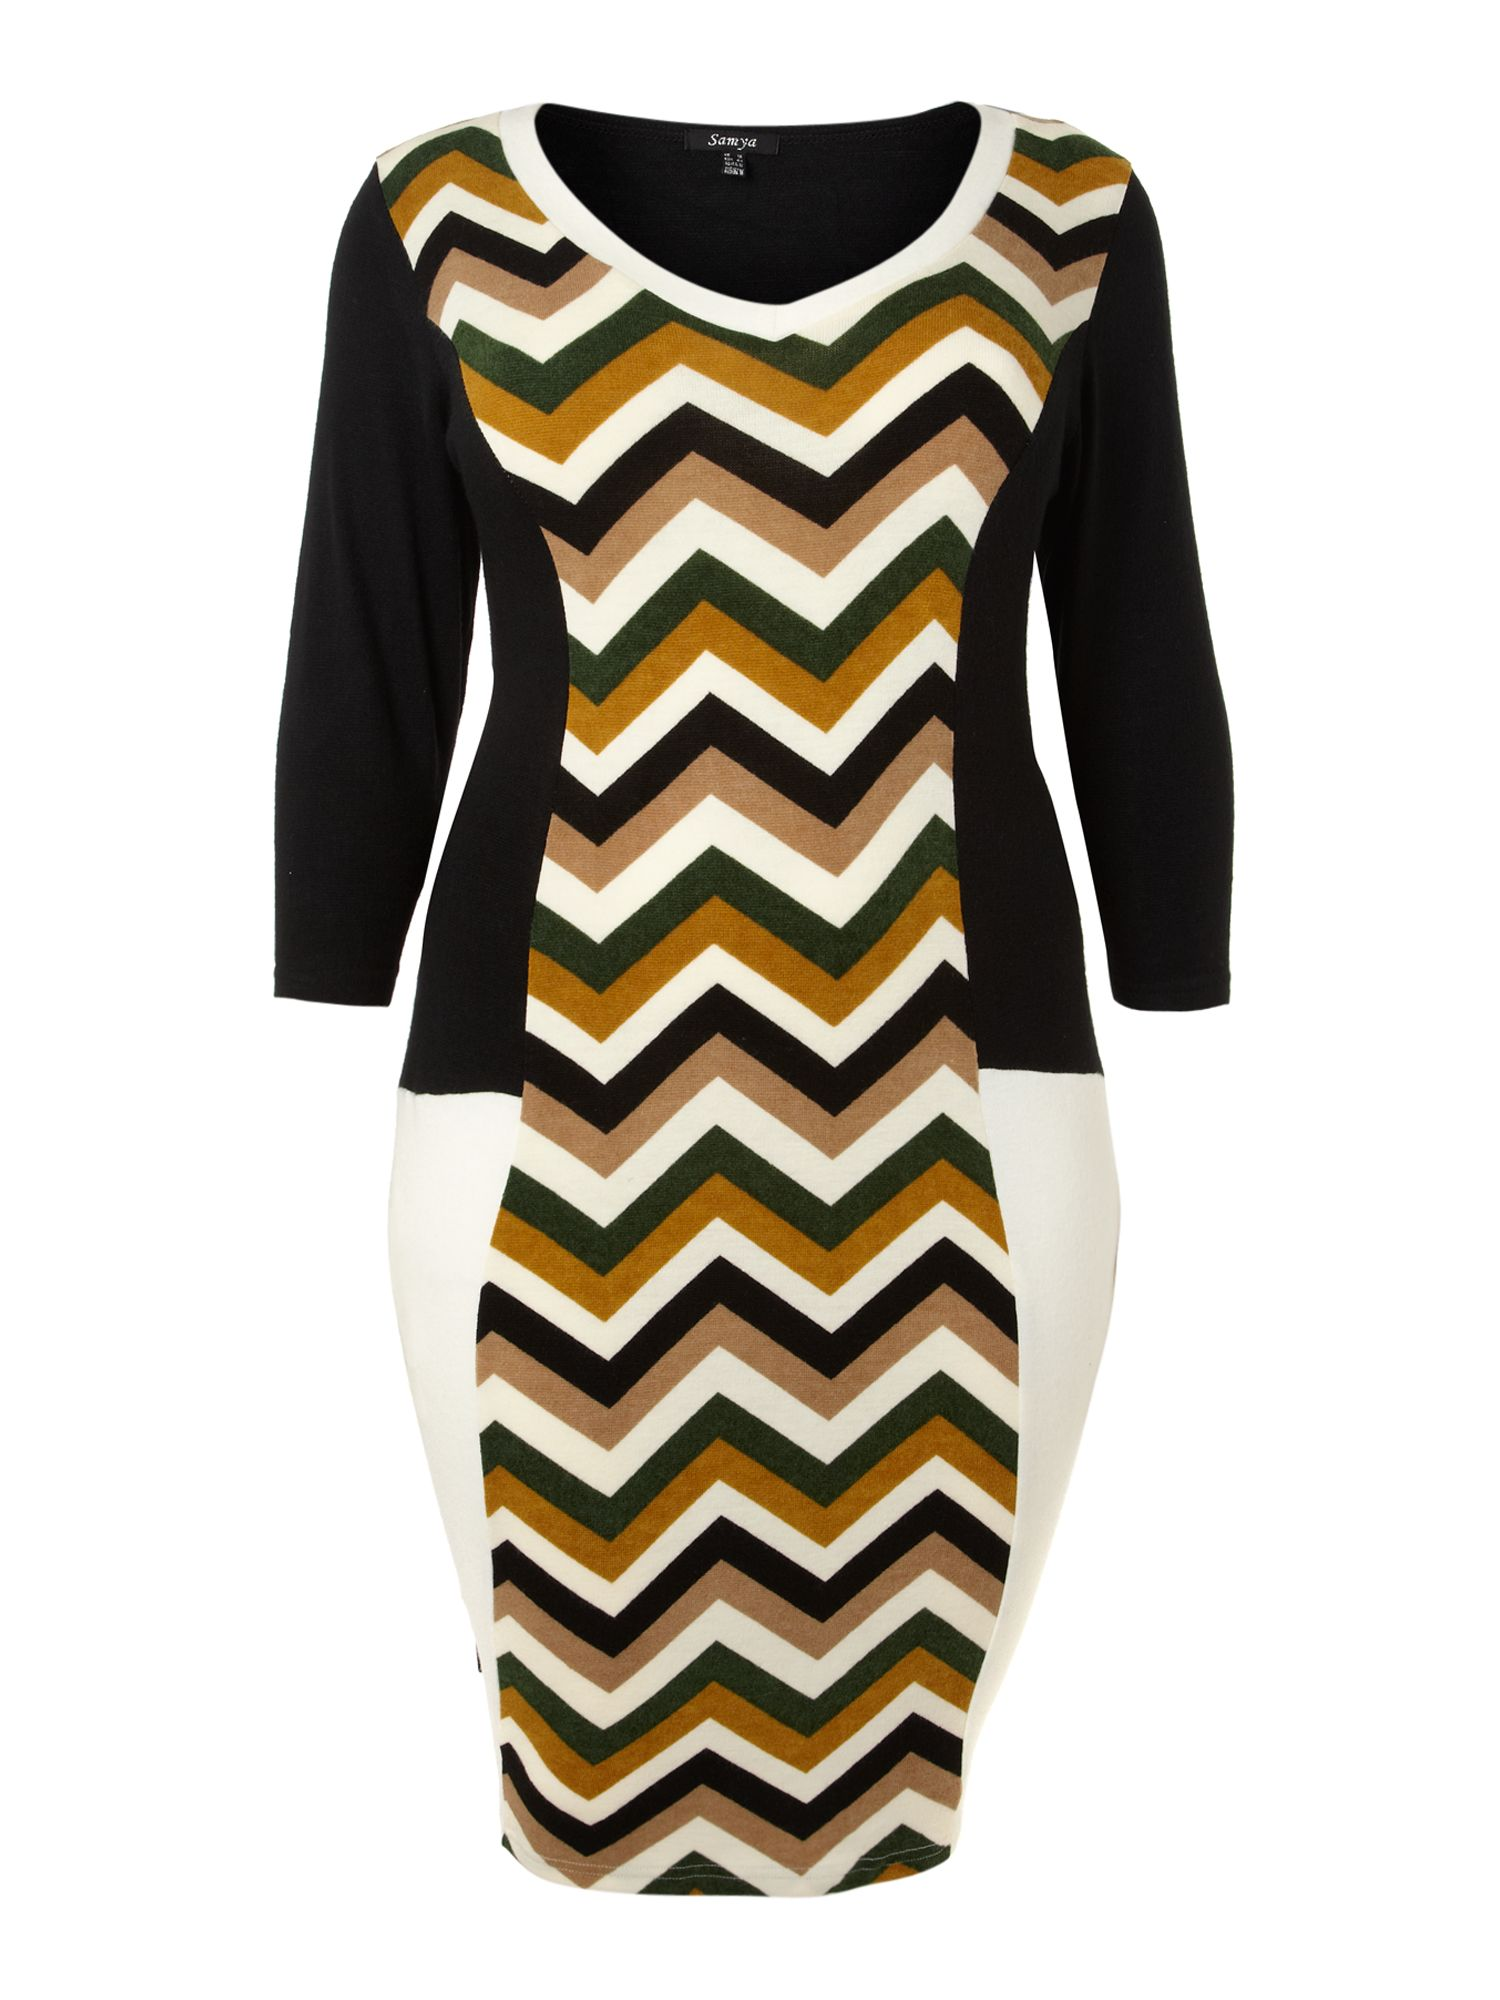 Chevron knit dress